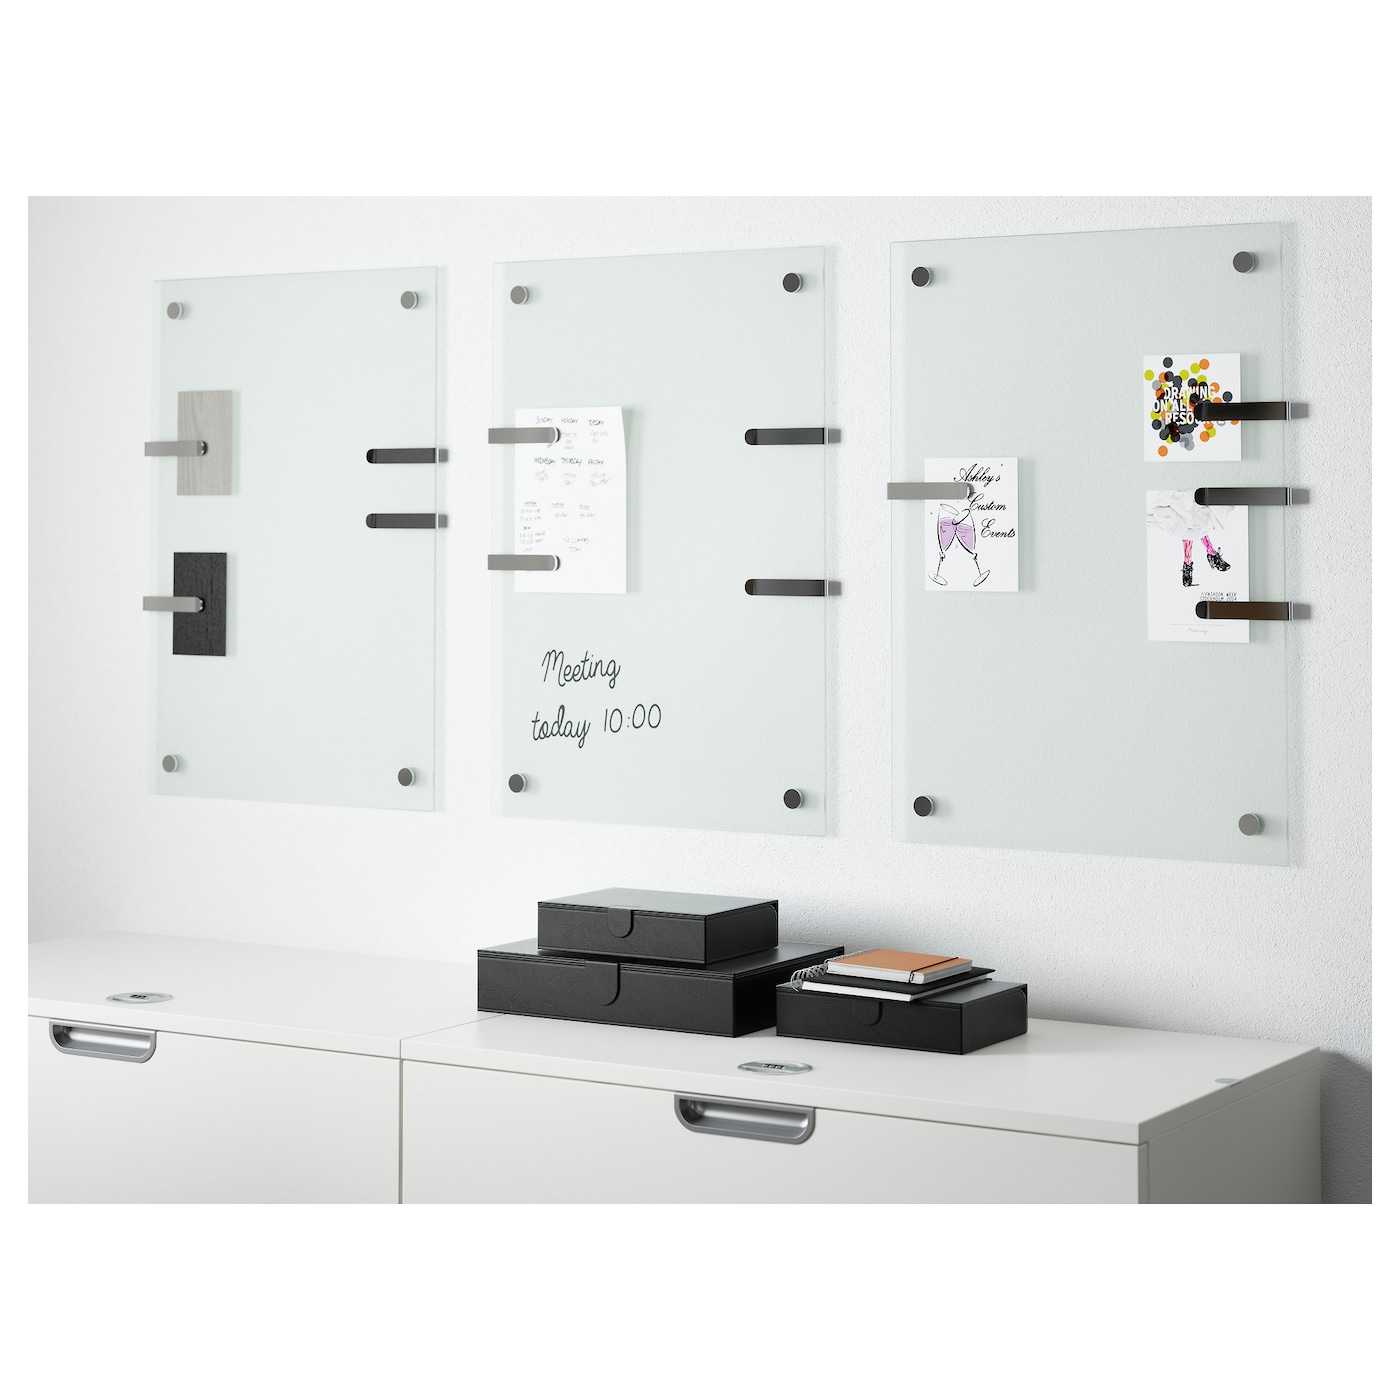 kludd noticeboard glass 65x45 cm ikea. Black Bedroom Furniture Sets. Home Design Ideas